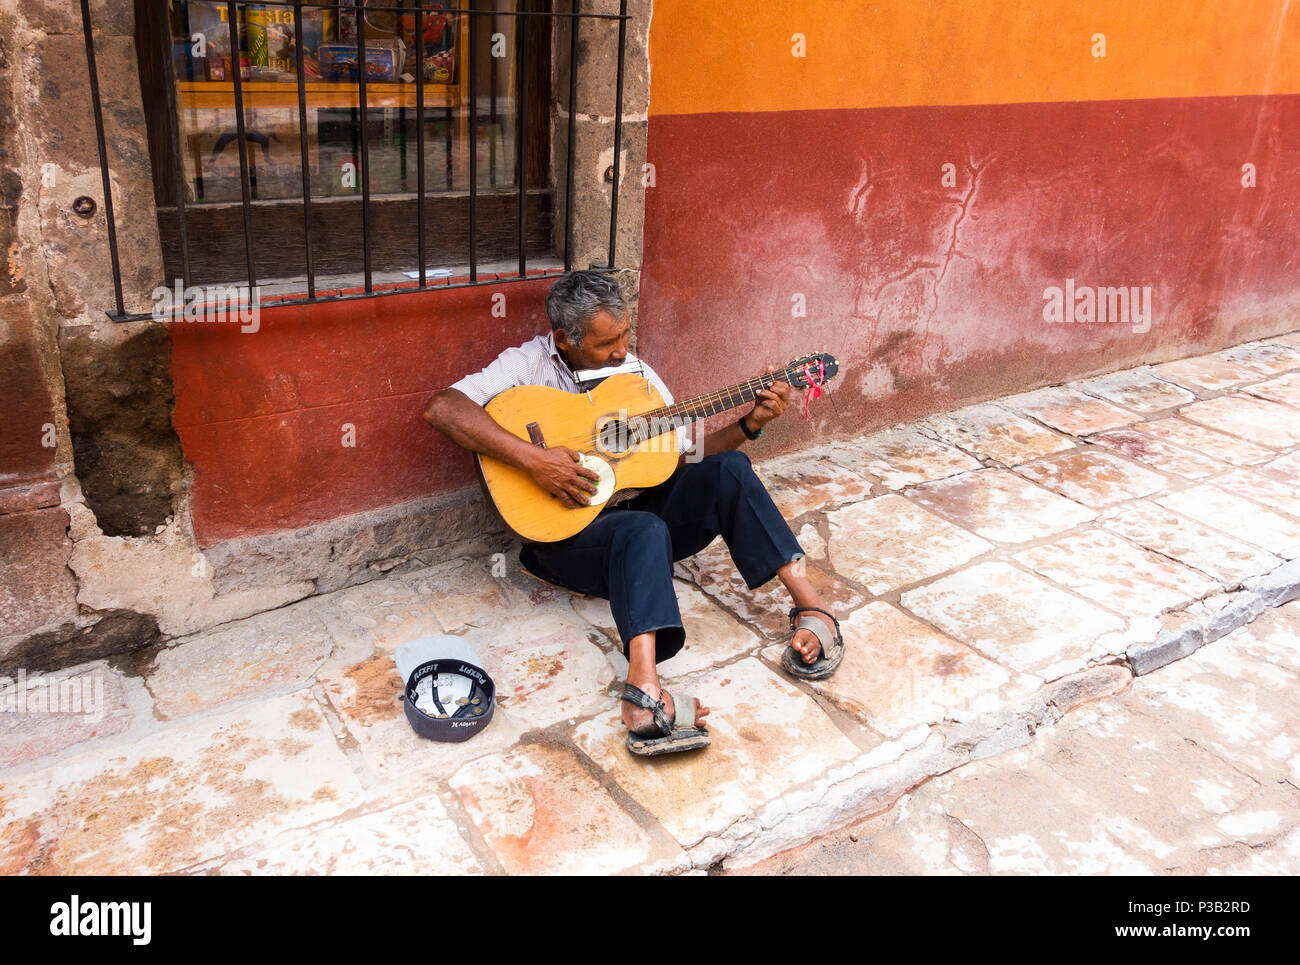 Crippled busker playing guitar and harmonica, collecting money in a hat, in San Miguel de Allende - Stock Image